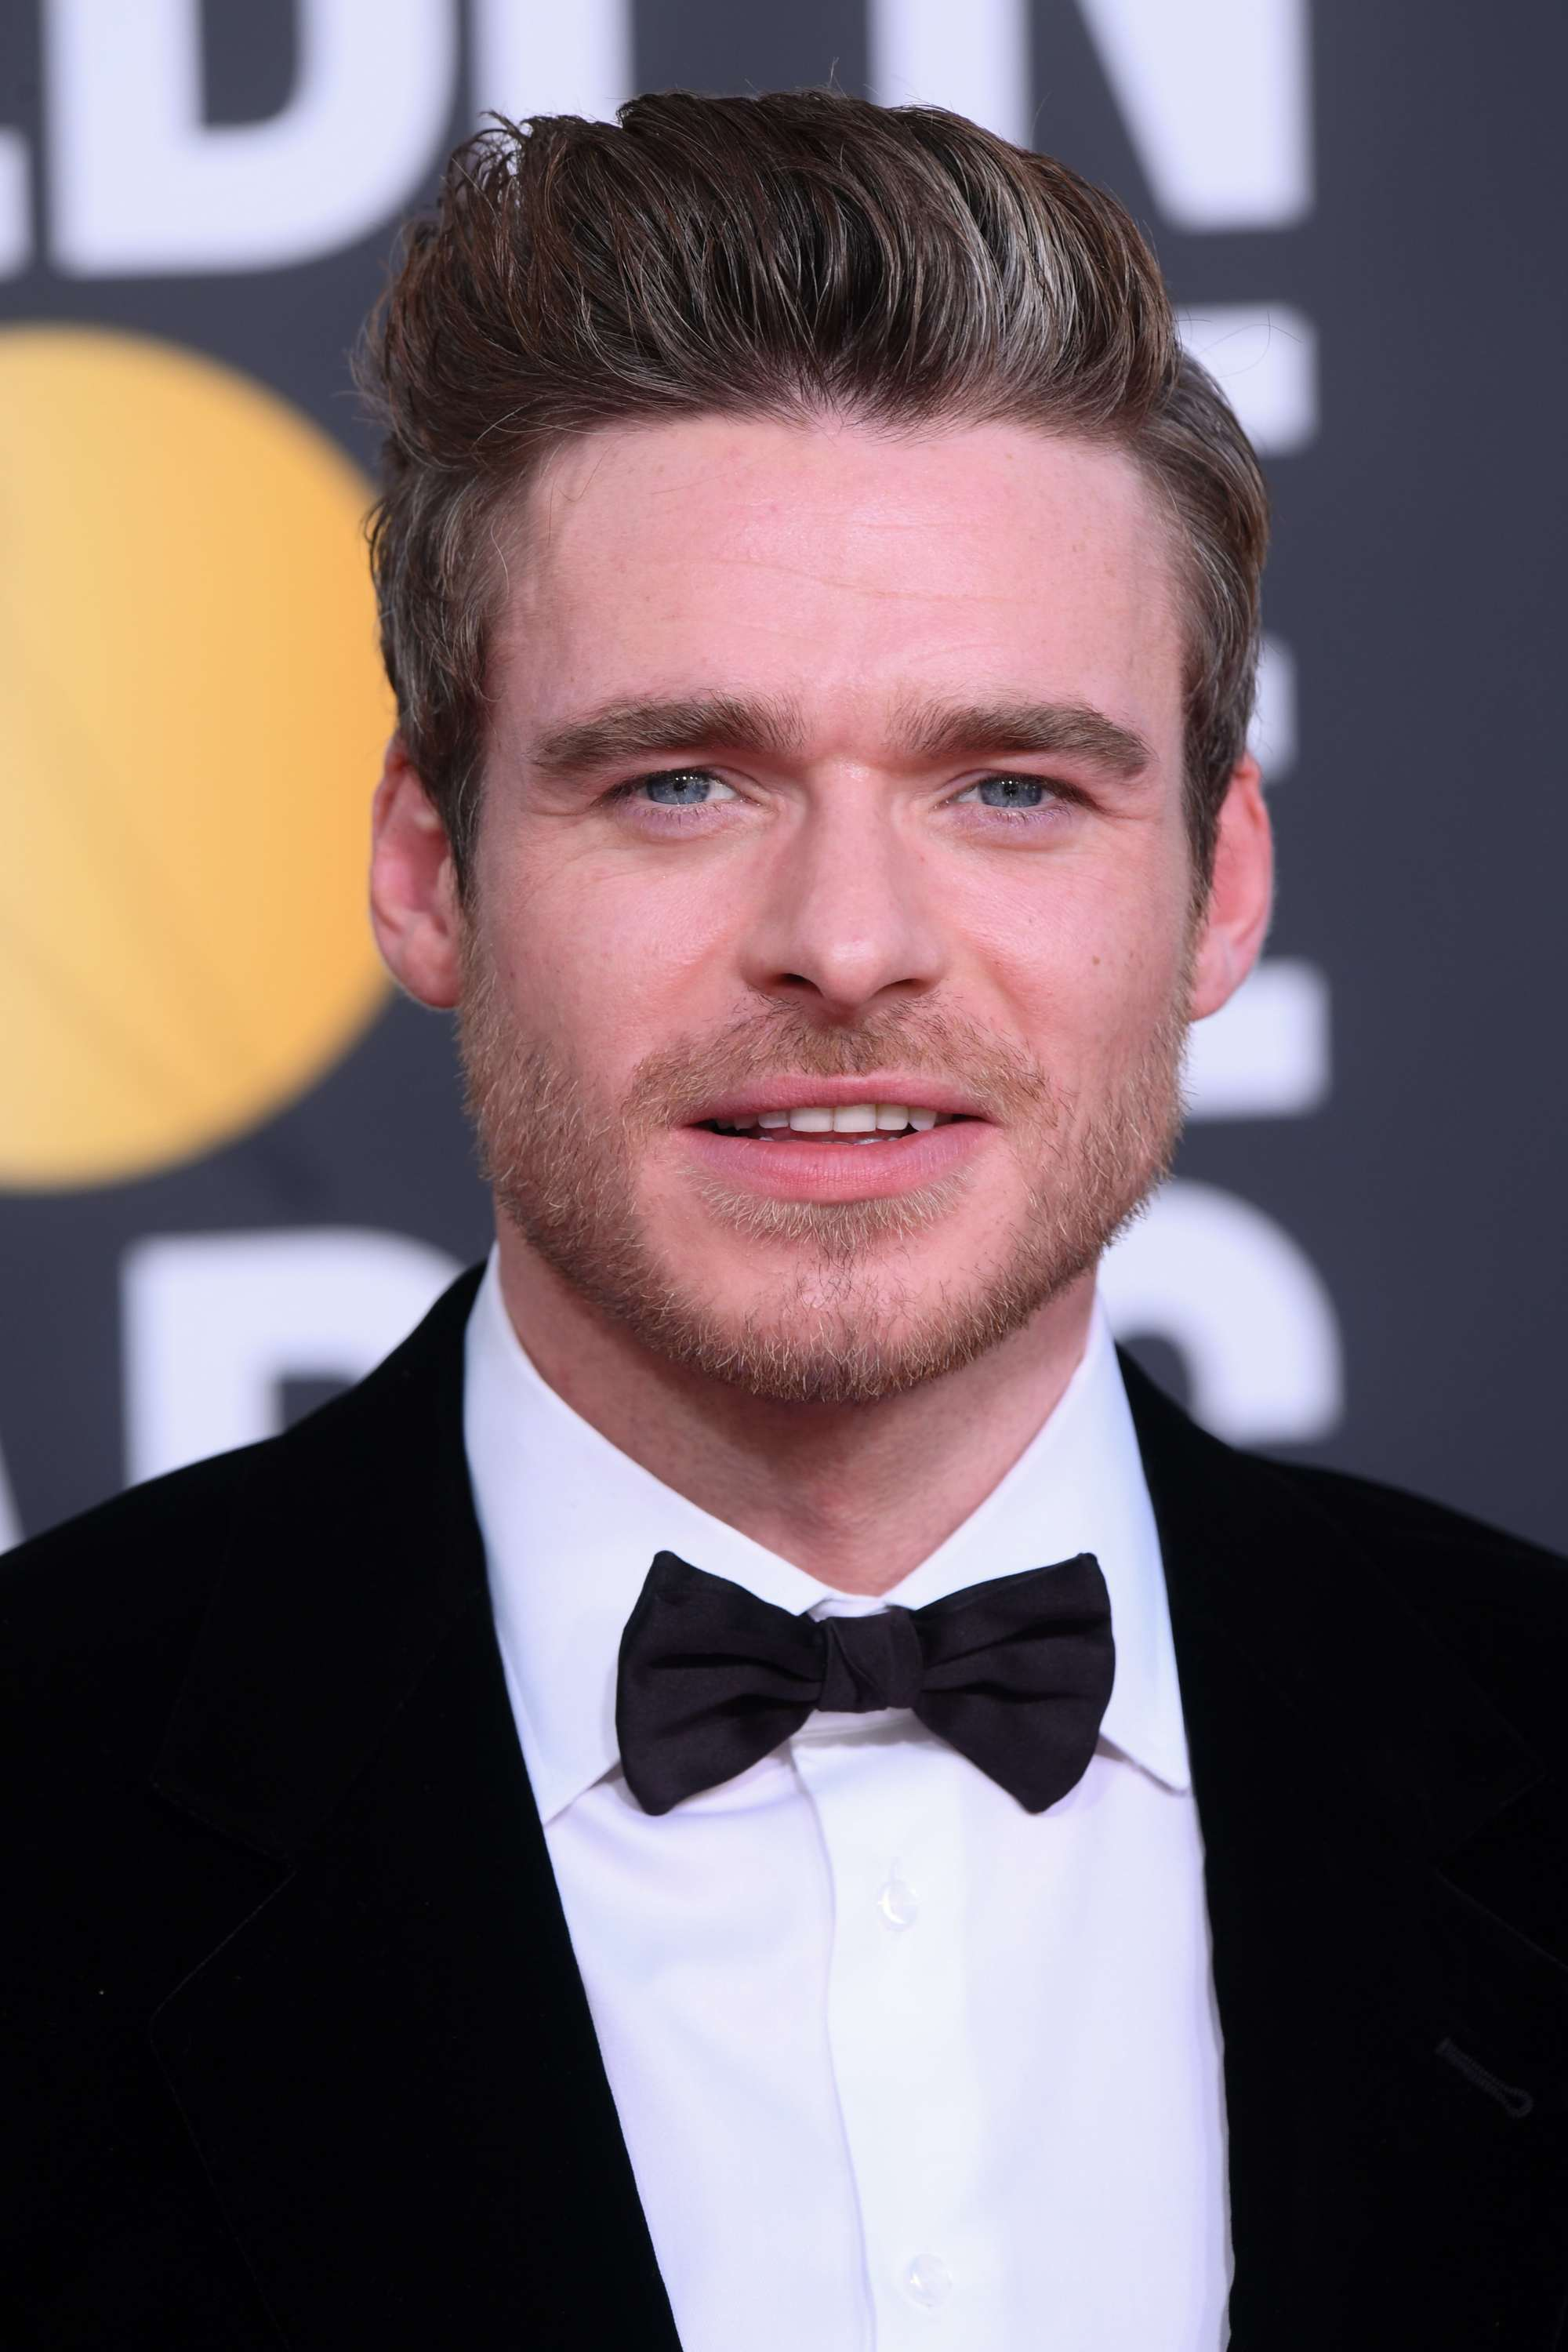 Golden Globes 2019: Richard Madden with brown hair with a grey streak, styled in a quiff